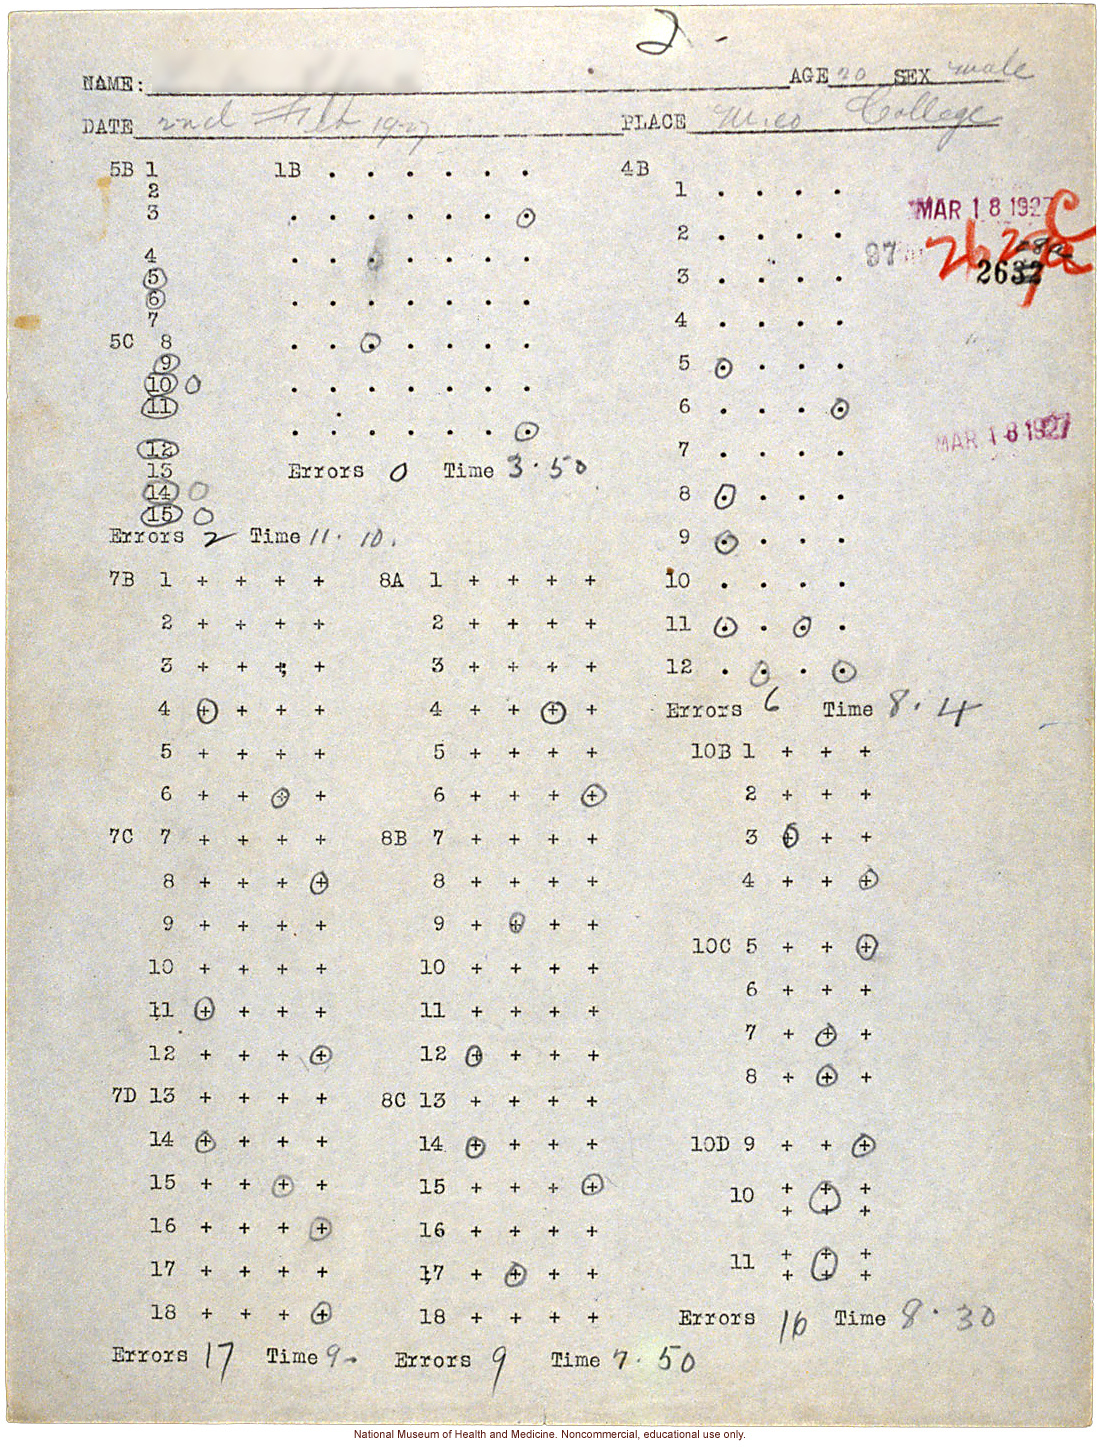 Mico College anthropometric case 2: photos, Schedule 3, measurements, pedigree, notes; by Morris Steggerda for <i>Race Crossing in Jamaica</i>